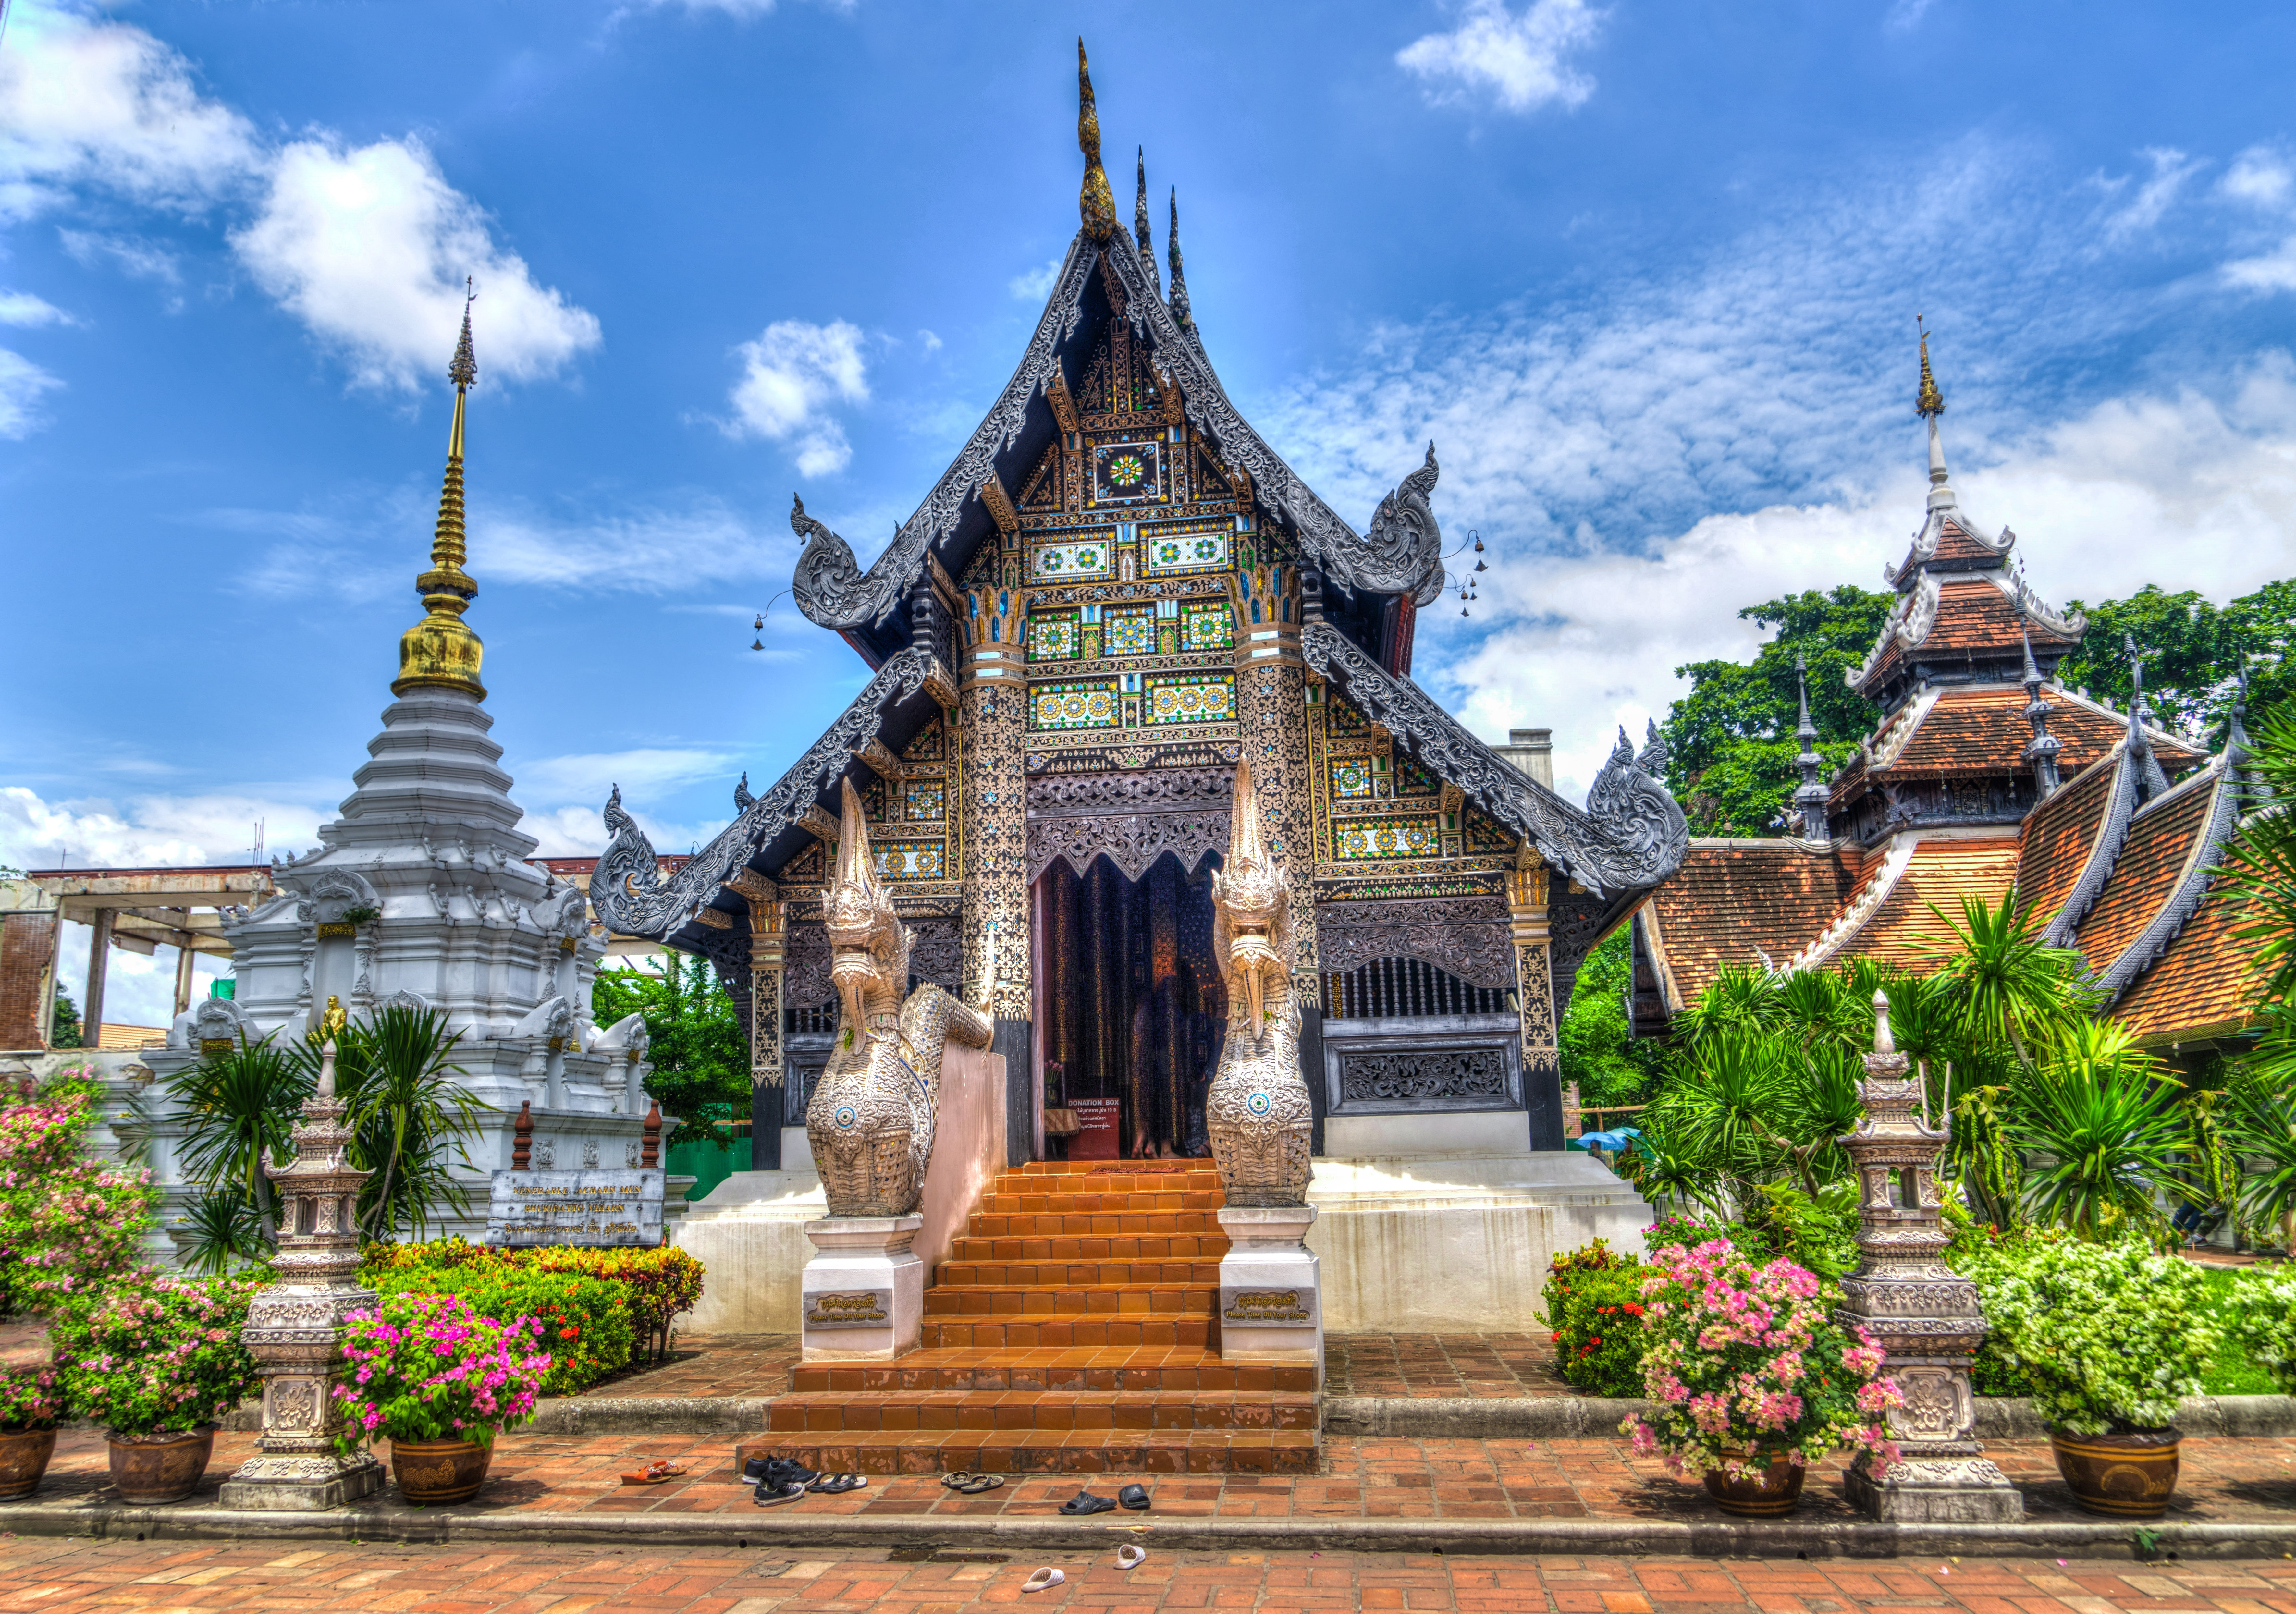 chiang-mai-1670926 image by Michelle Maria on Pixabay